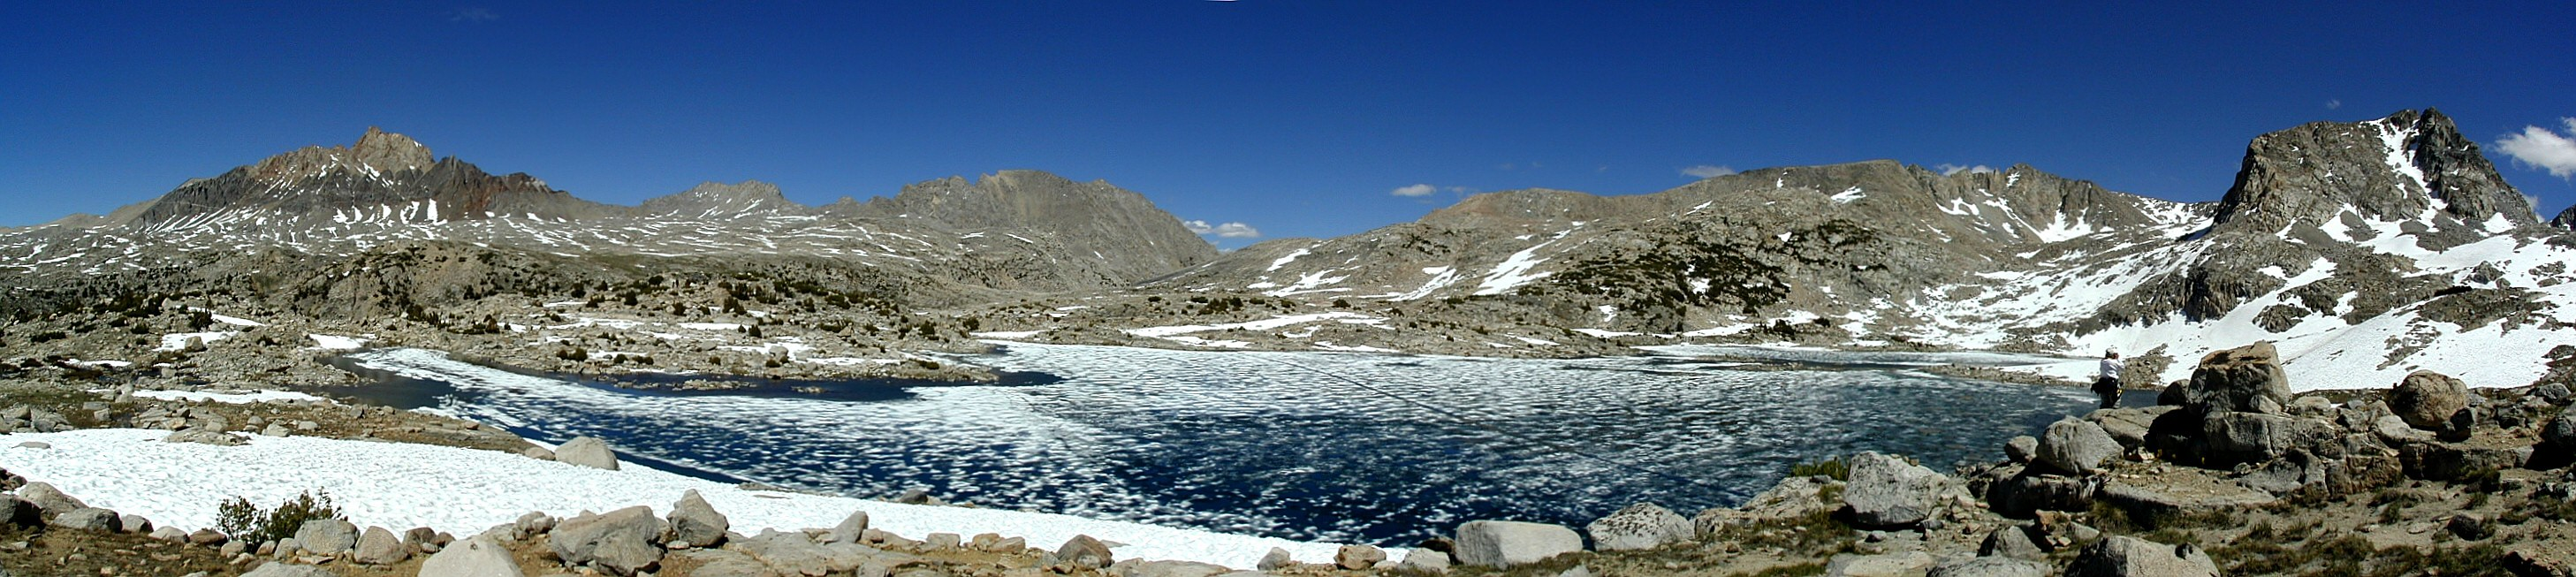 Over Piute Pass, eastern Sierras --- Mt. Humphreys and Muriel Lake in Humphreys Basin --- 6-pic pano